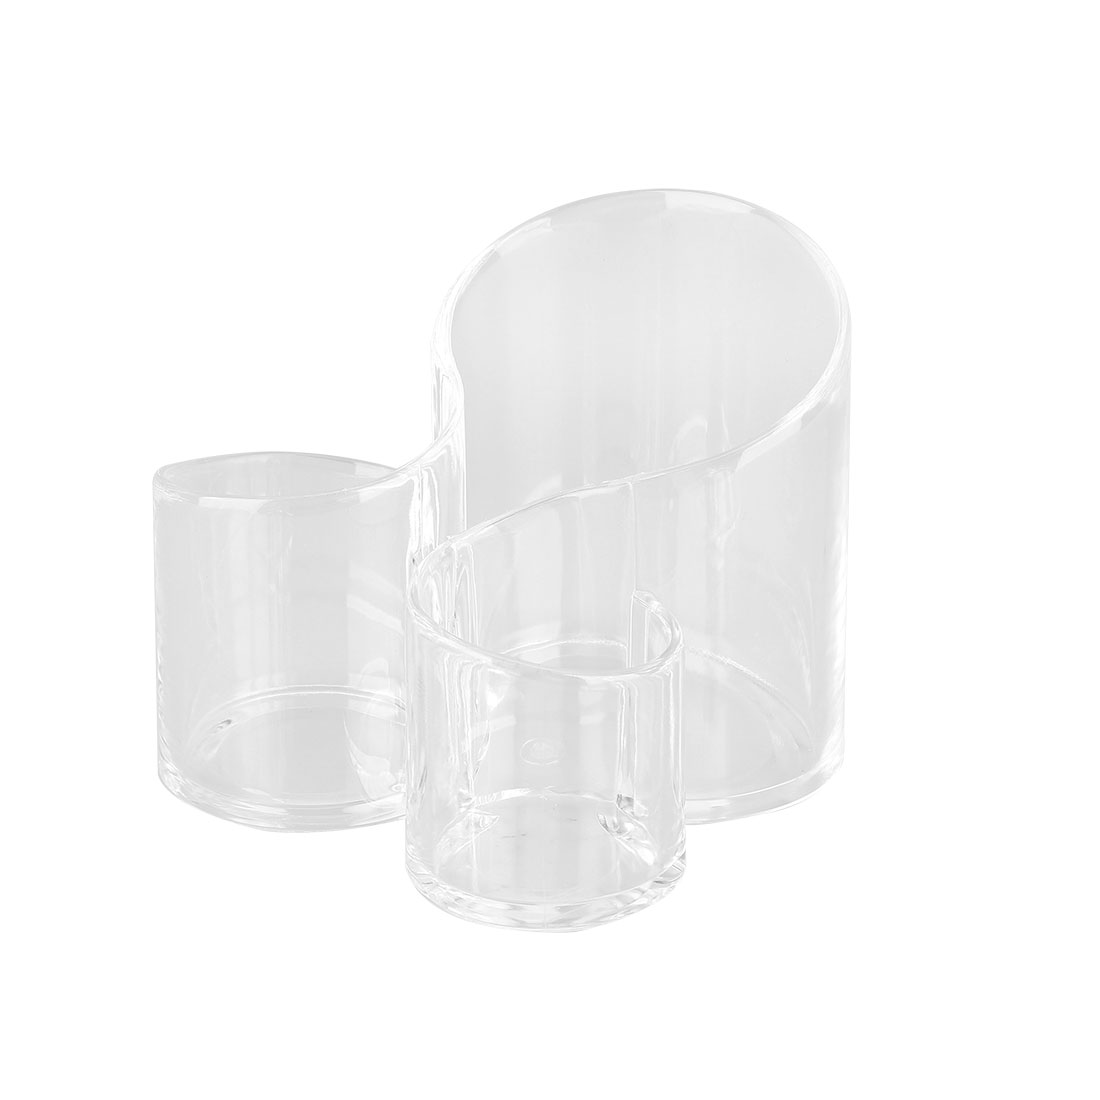 Clear Acrylic Makeup Organiser Box Cosmetic Brush Holder with Compartments